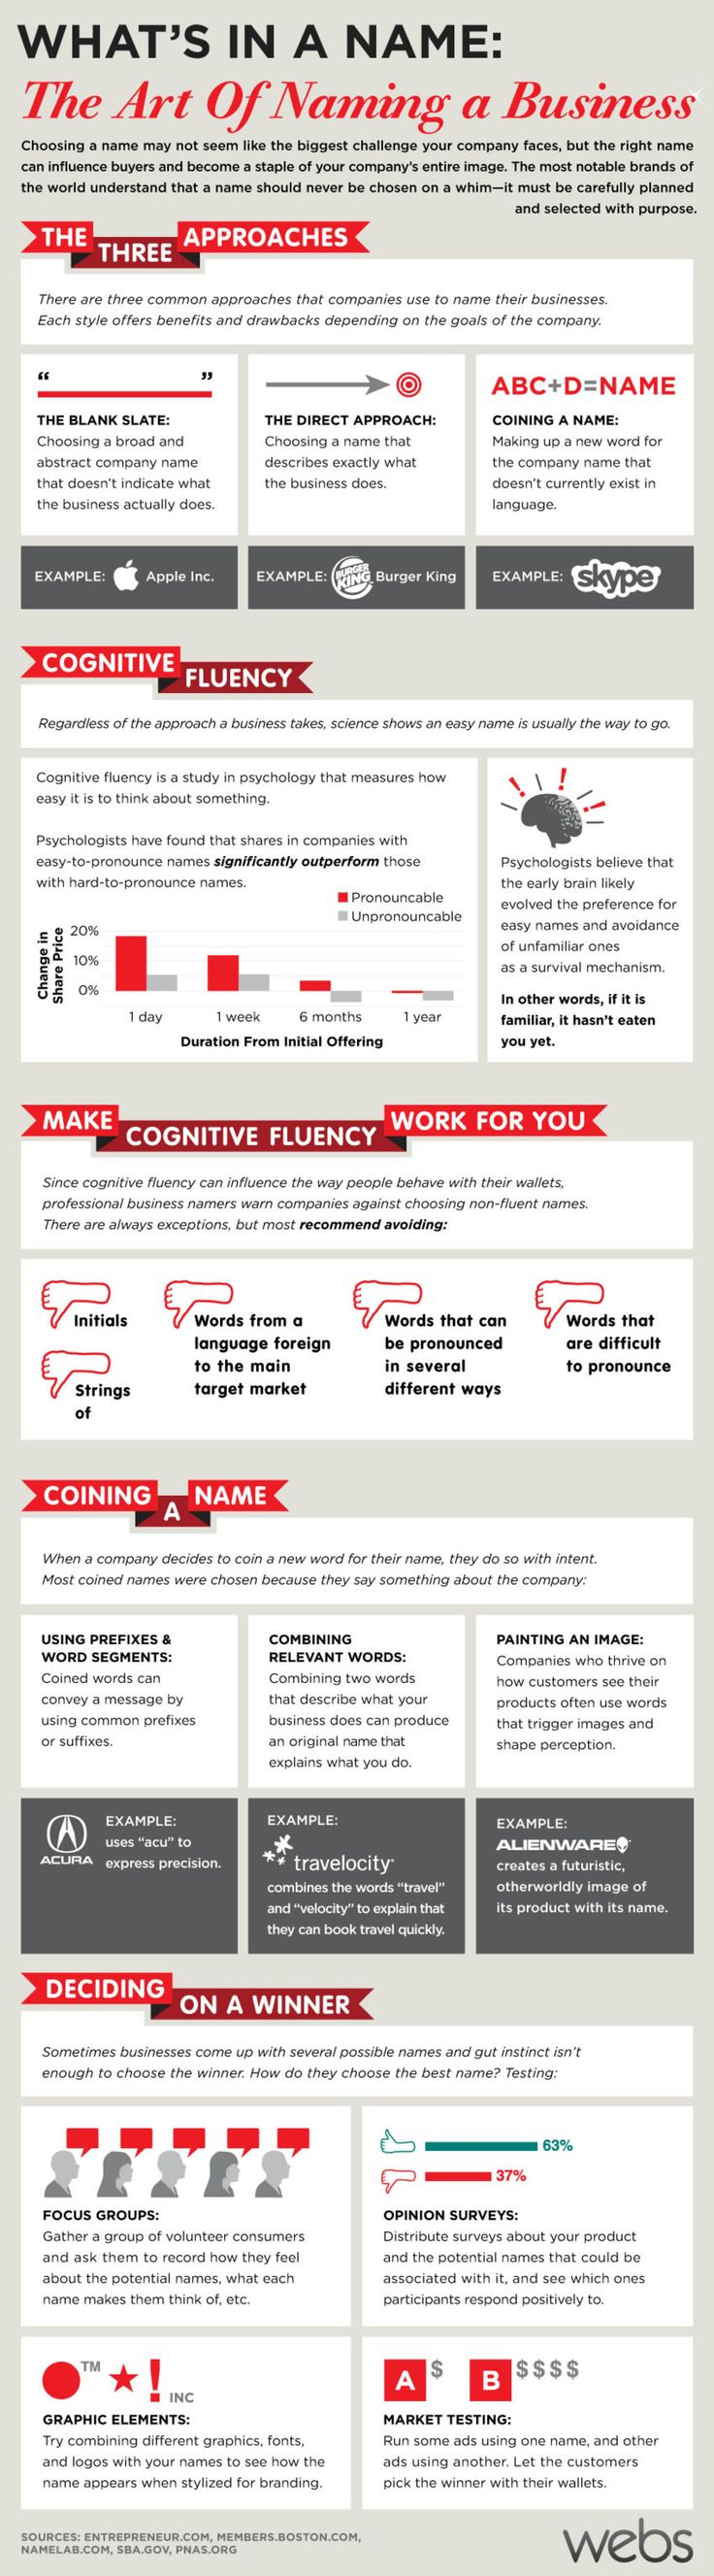 How To Name Your Business, The Art Behind It | Infographic | UltraLinx